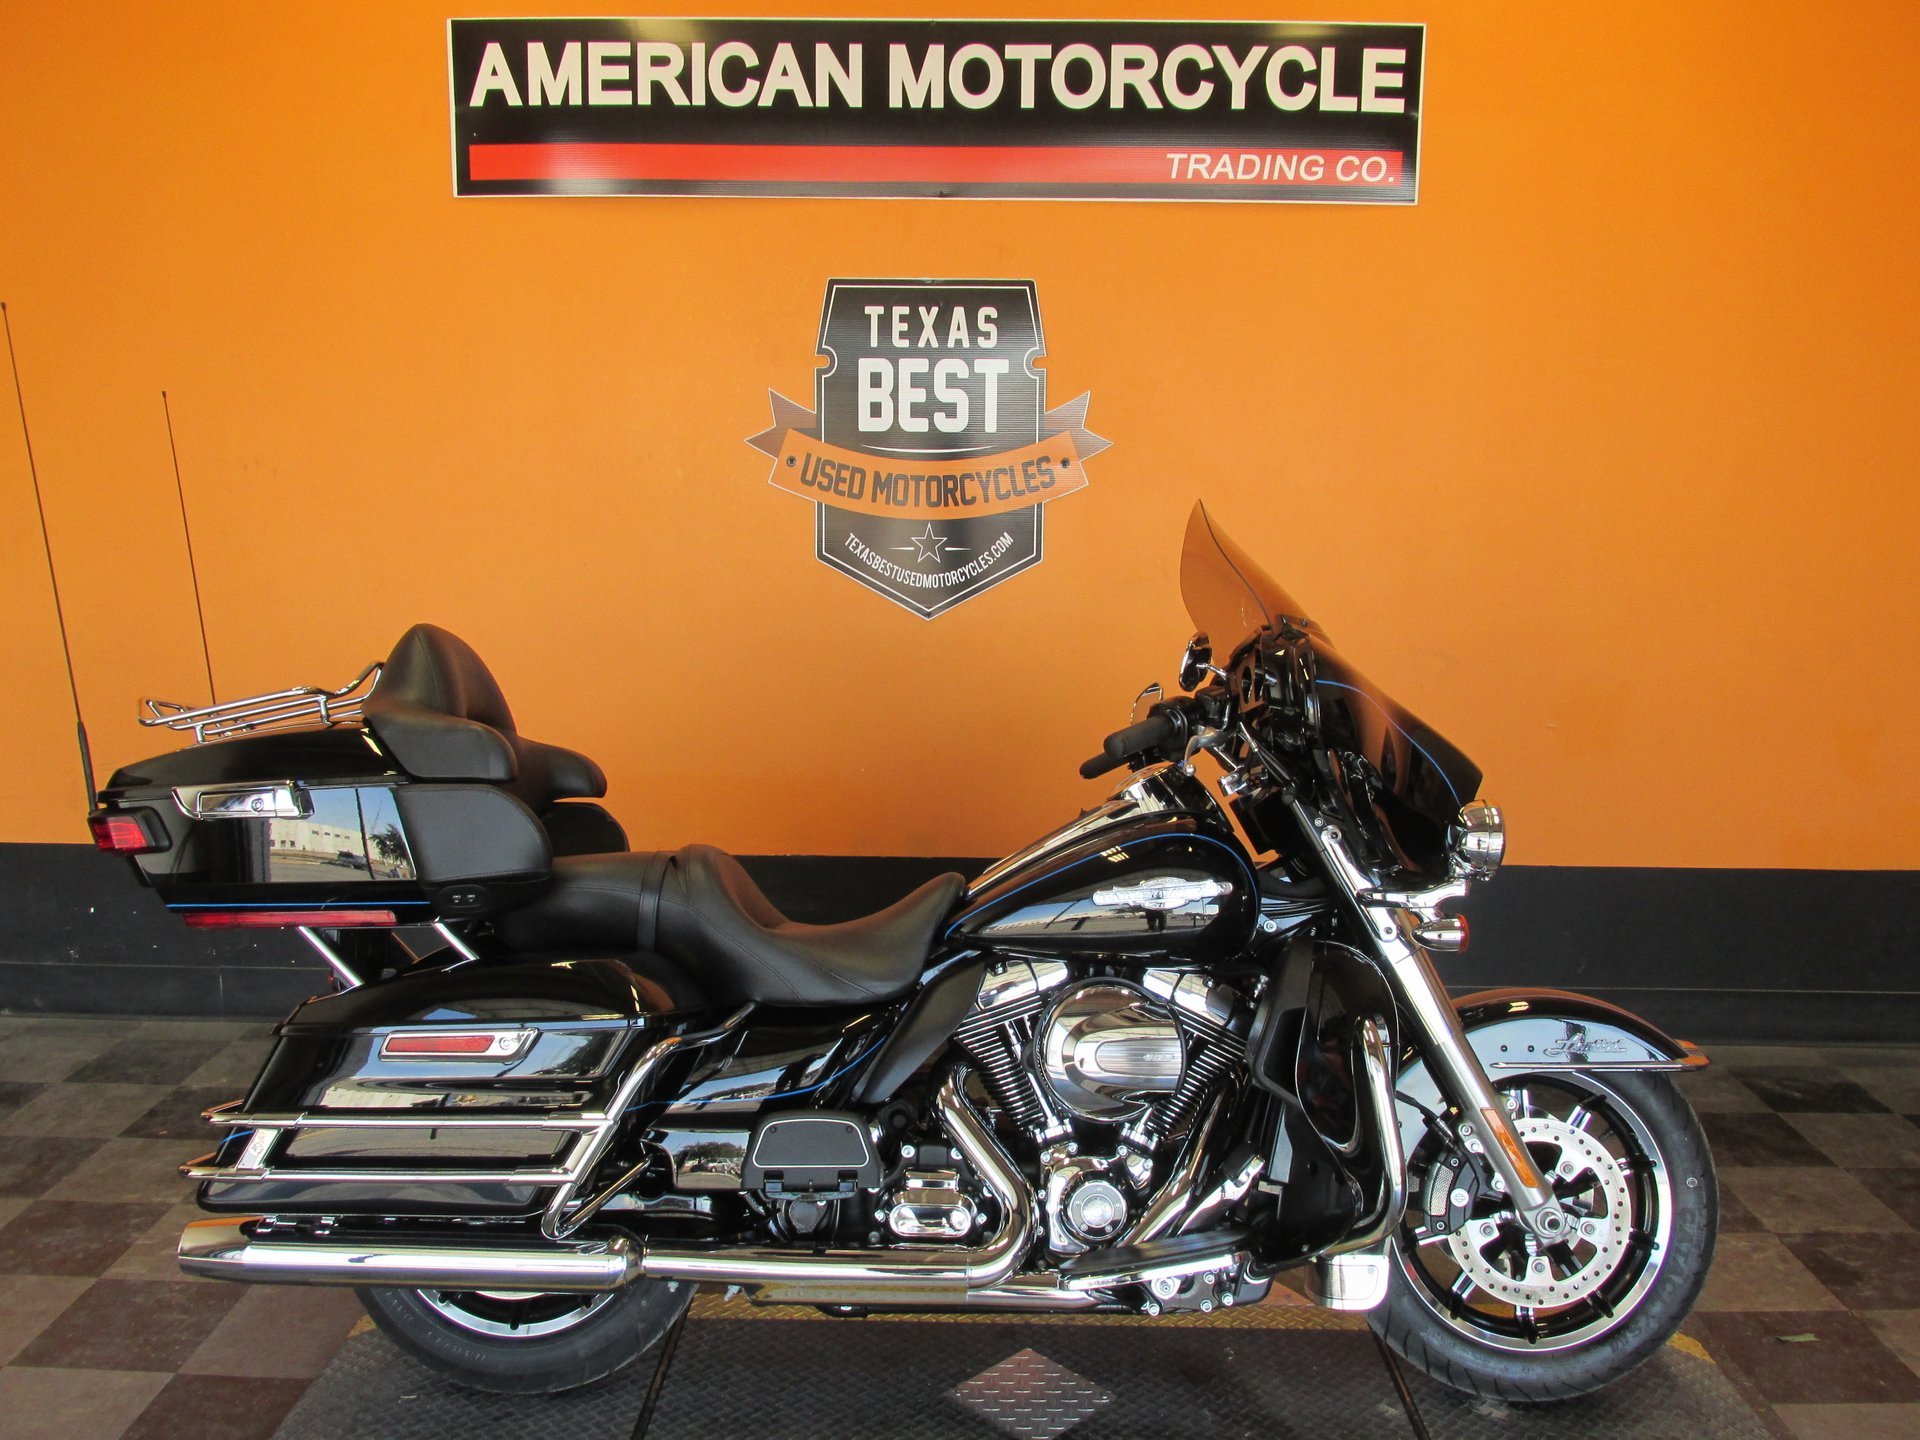 2015 harley davidson ultra limited flhtk peace officer ed